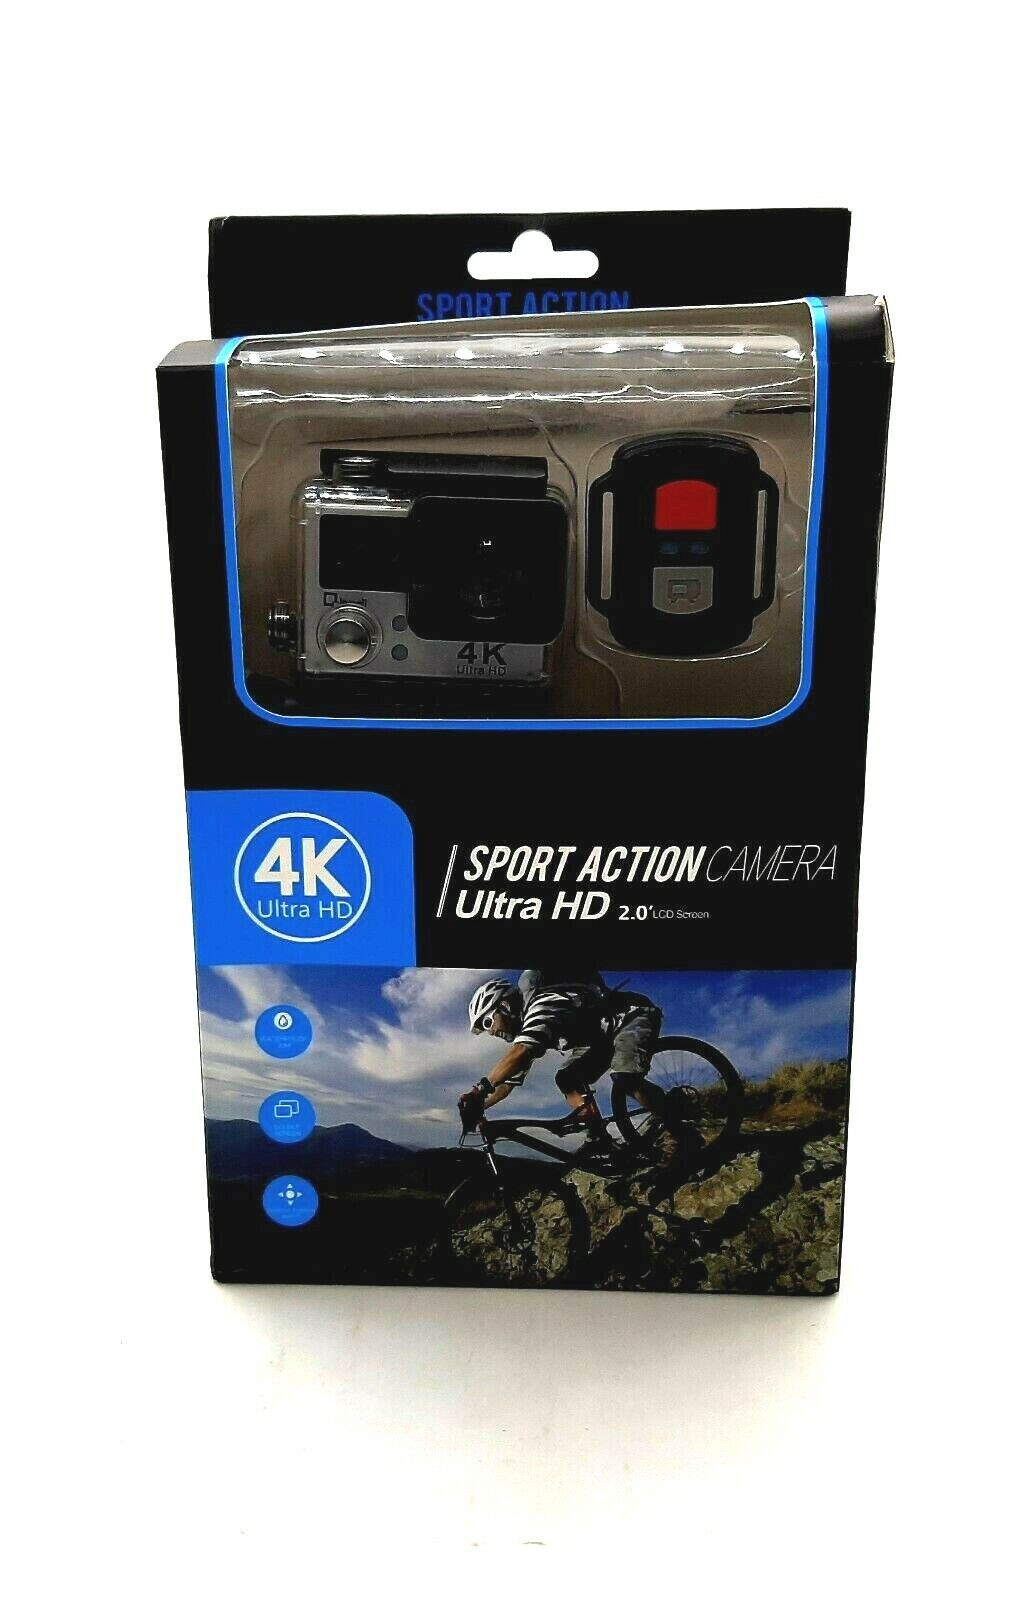 4K Wifi Sports Action Camera,Underwater Camcorder Qipexeii Double Screen Sony Se action camcorder double qipexeii screen sony sports wifi